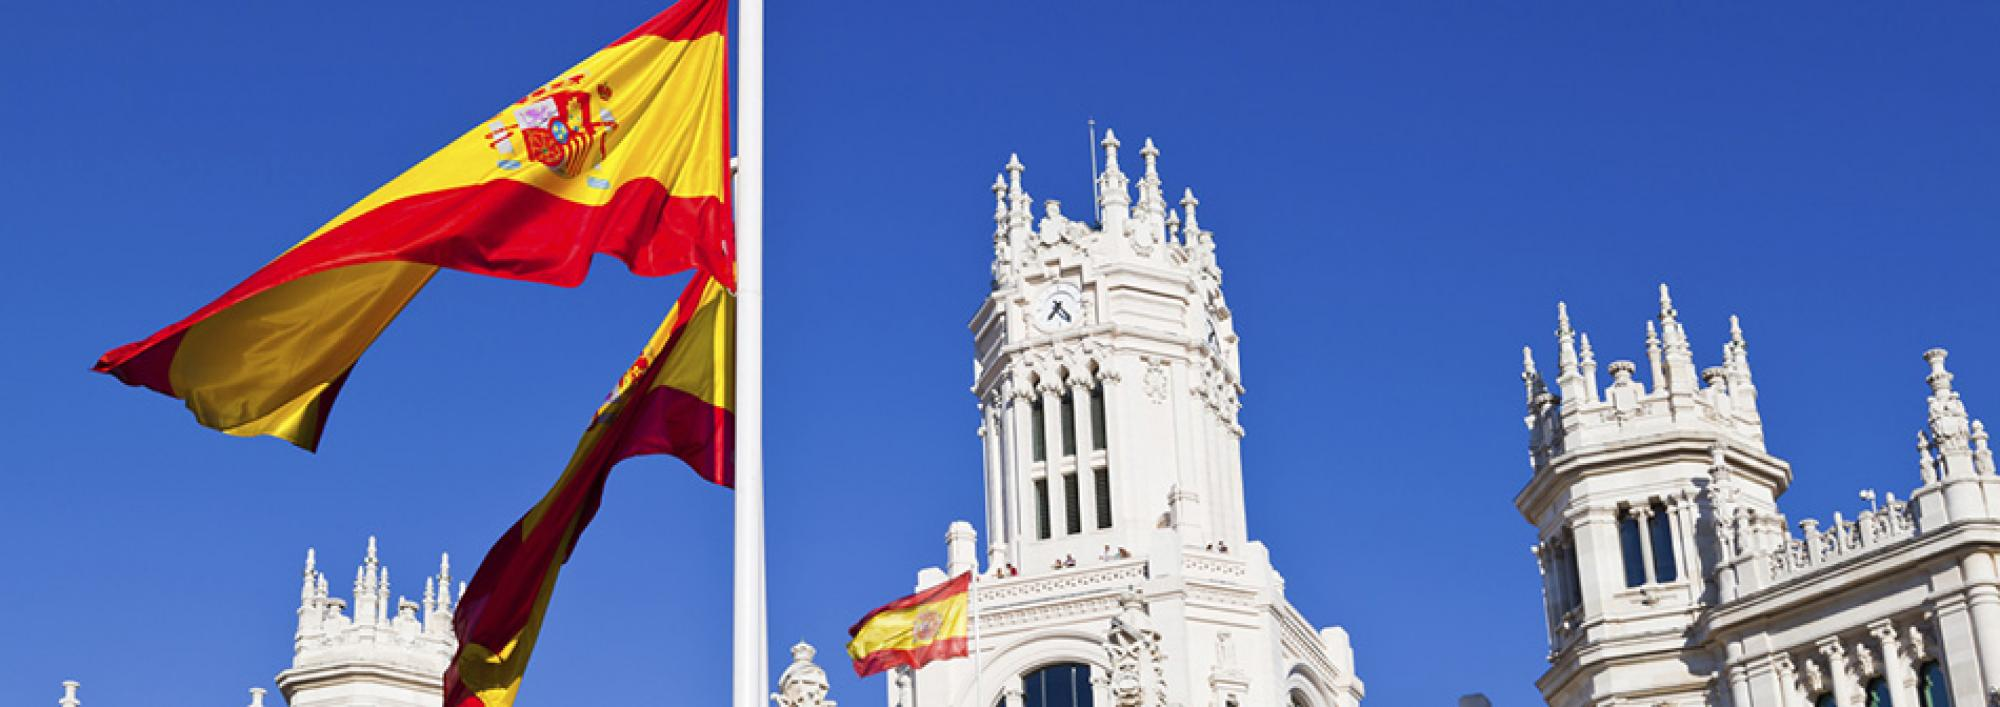 Spanish flags and architecture